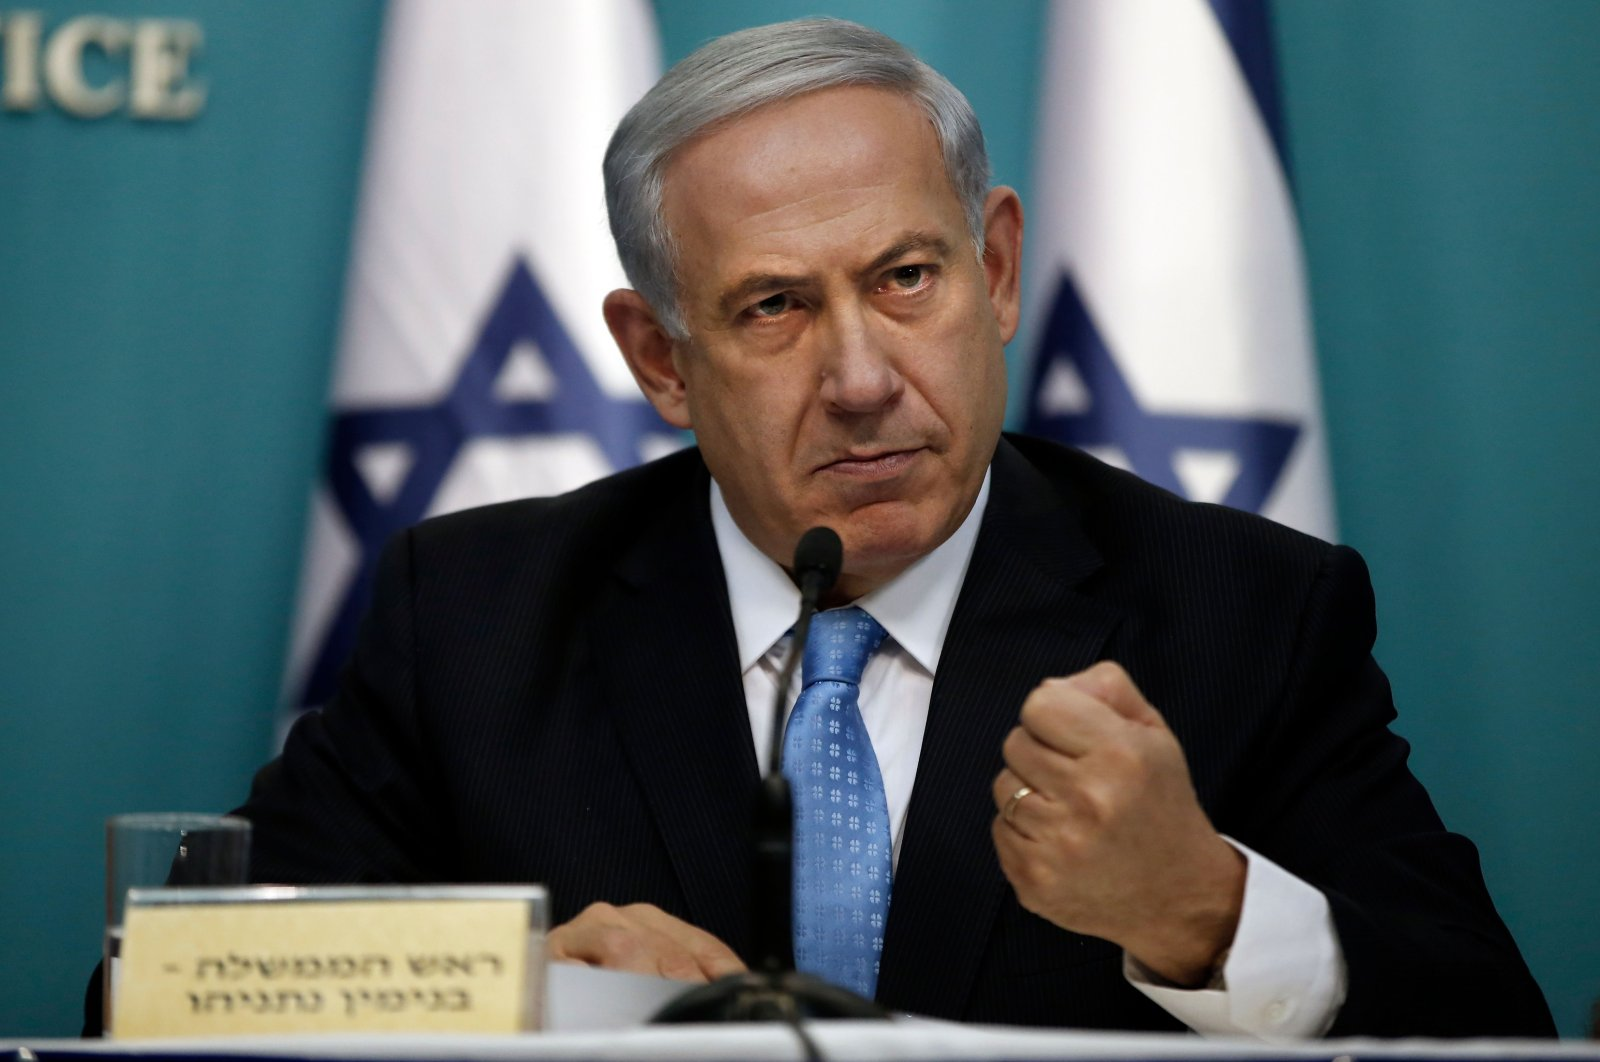 Israeli Prime Minister Benjamin Netanyahu gestures as he delivers a speech during a press conference at the prime minister's office in Jerusalem, Aug. 27, 2014. (AFP Photo)